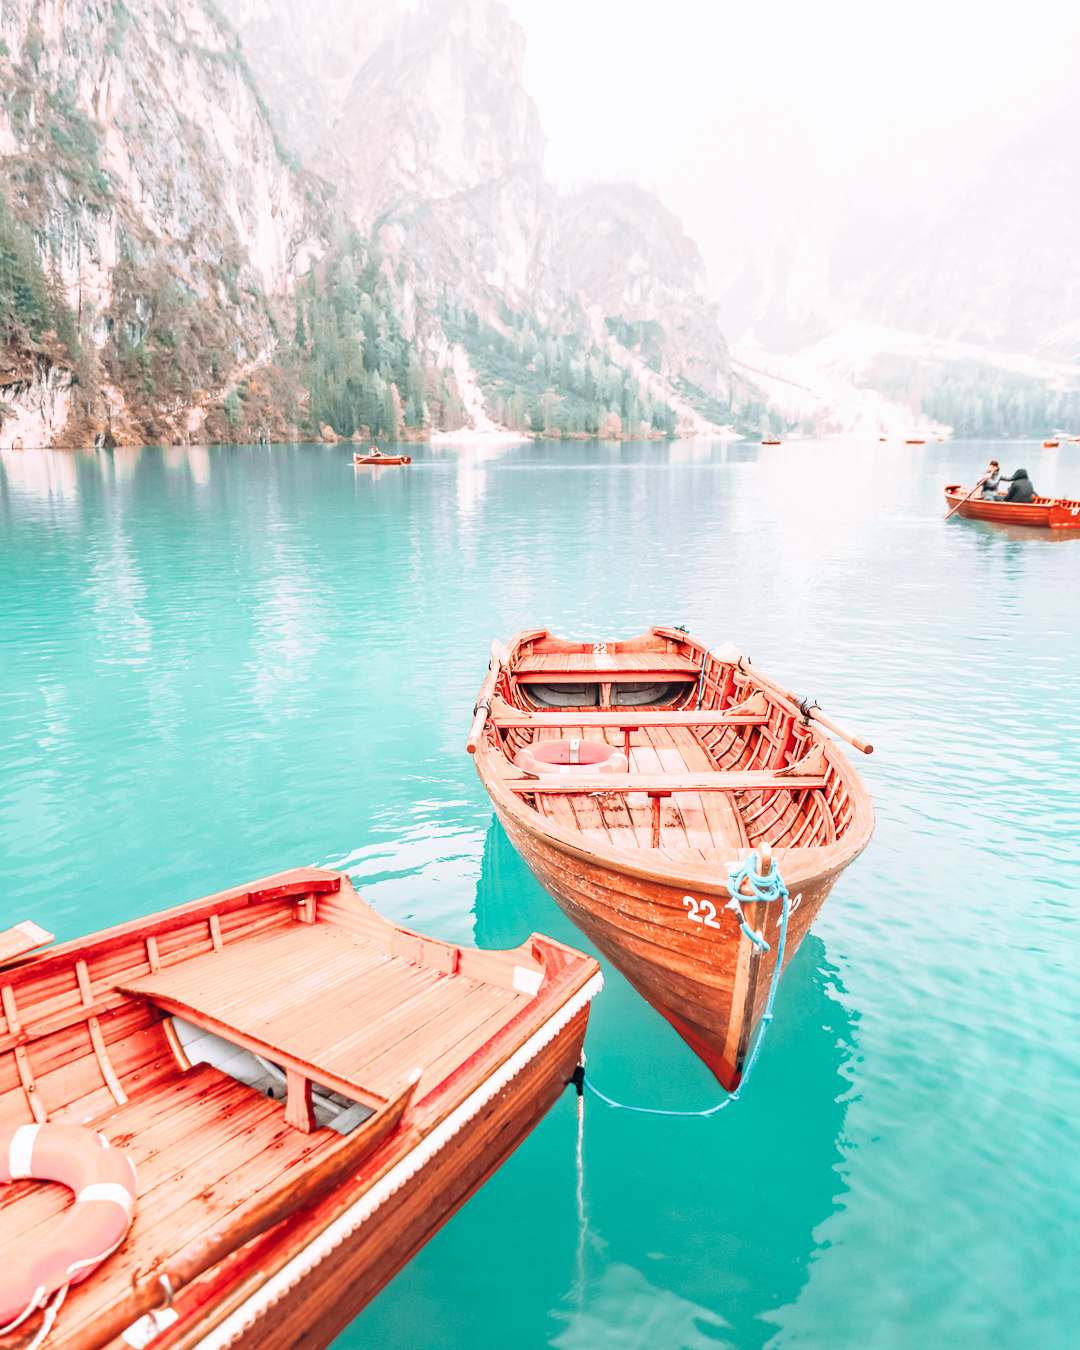 A boat in the Dolomites